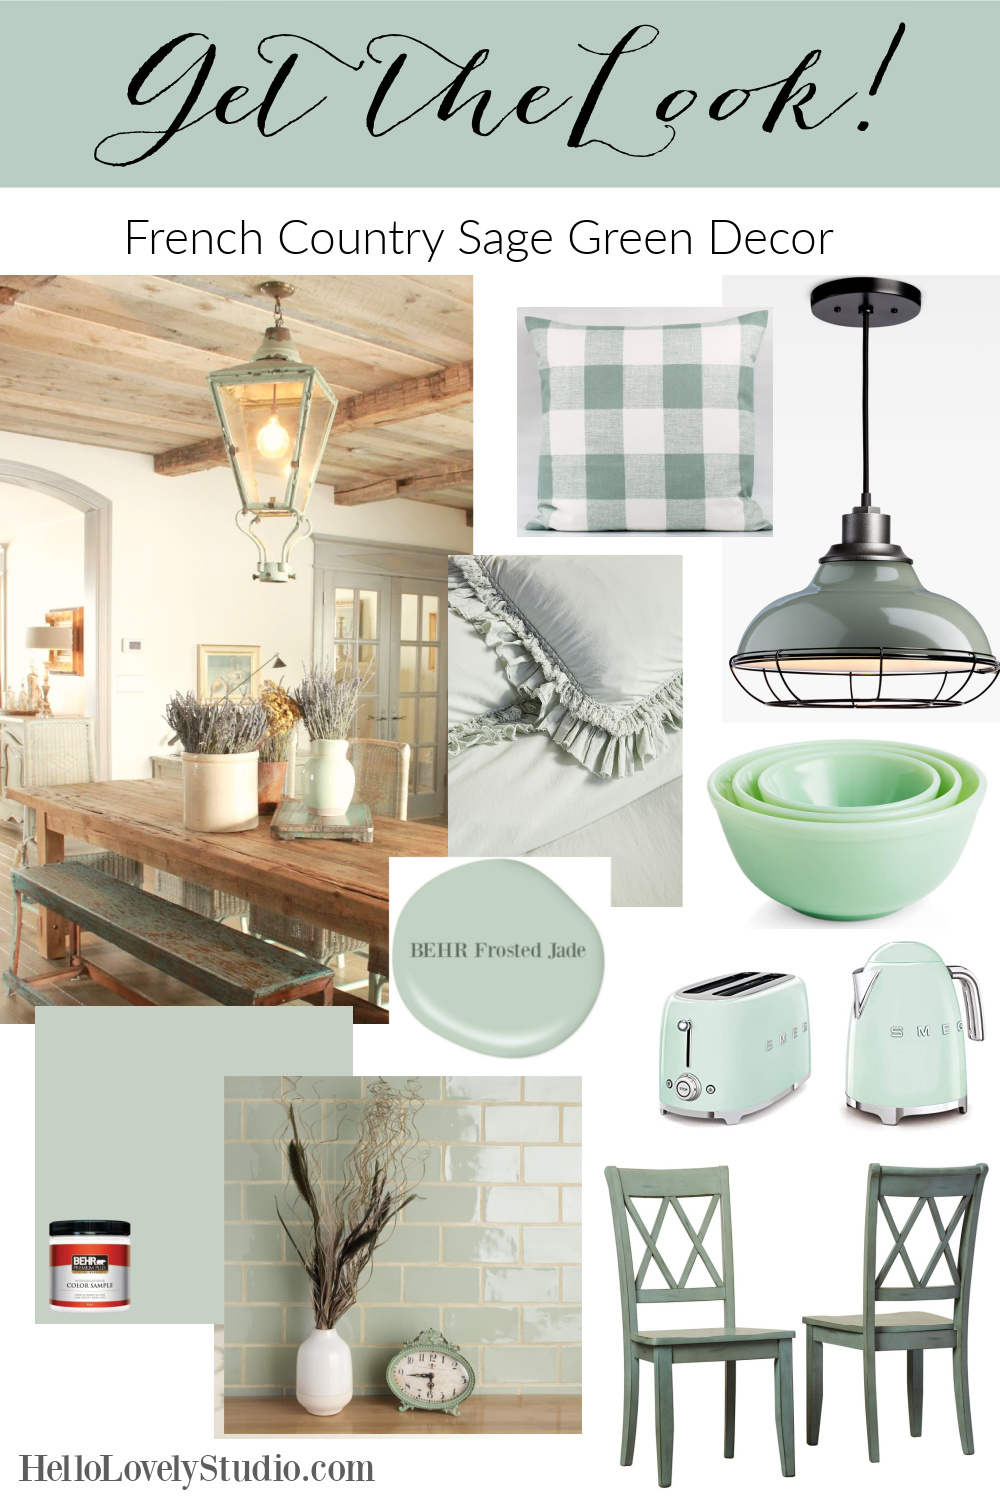 Get the Look: French Country Sage Green Decor on Hello Lovely Studio. #frenchcountry #interiordesign #homedecor #sagegreen #greendecor